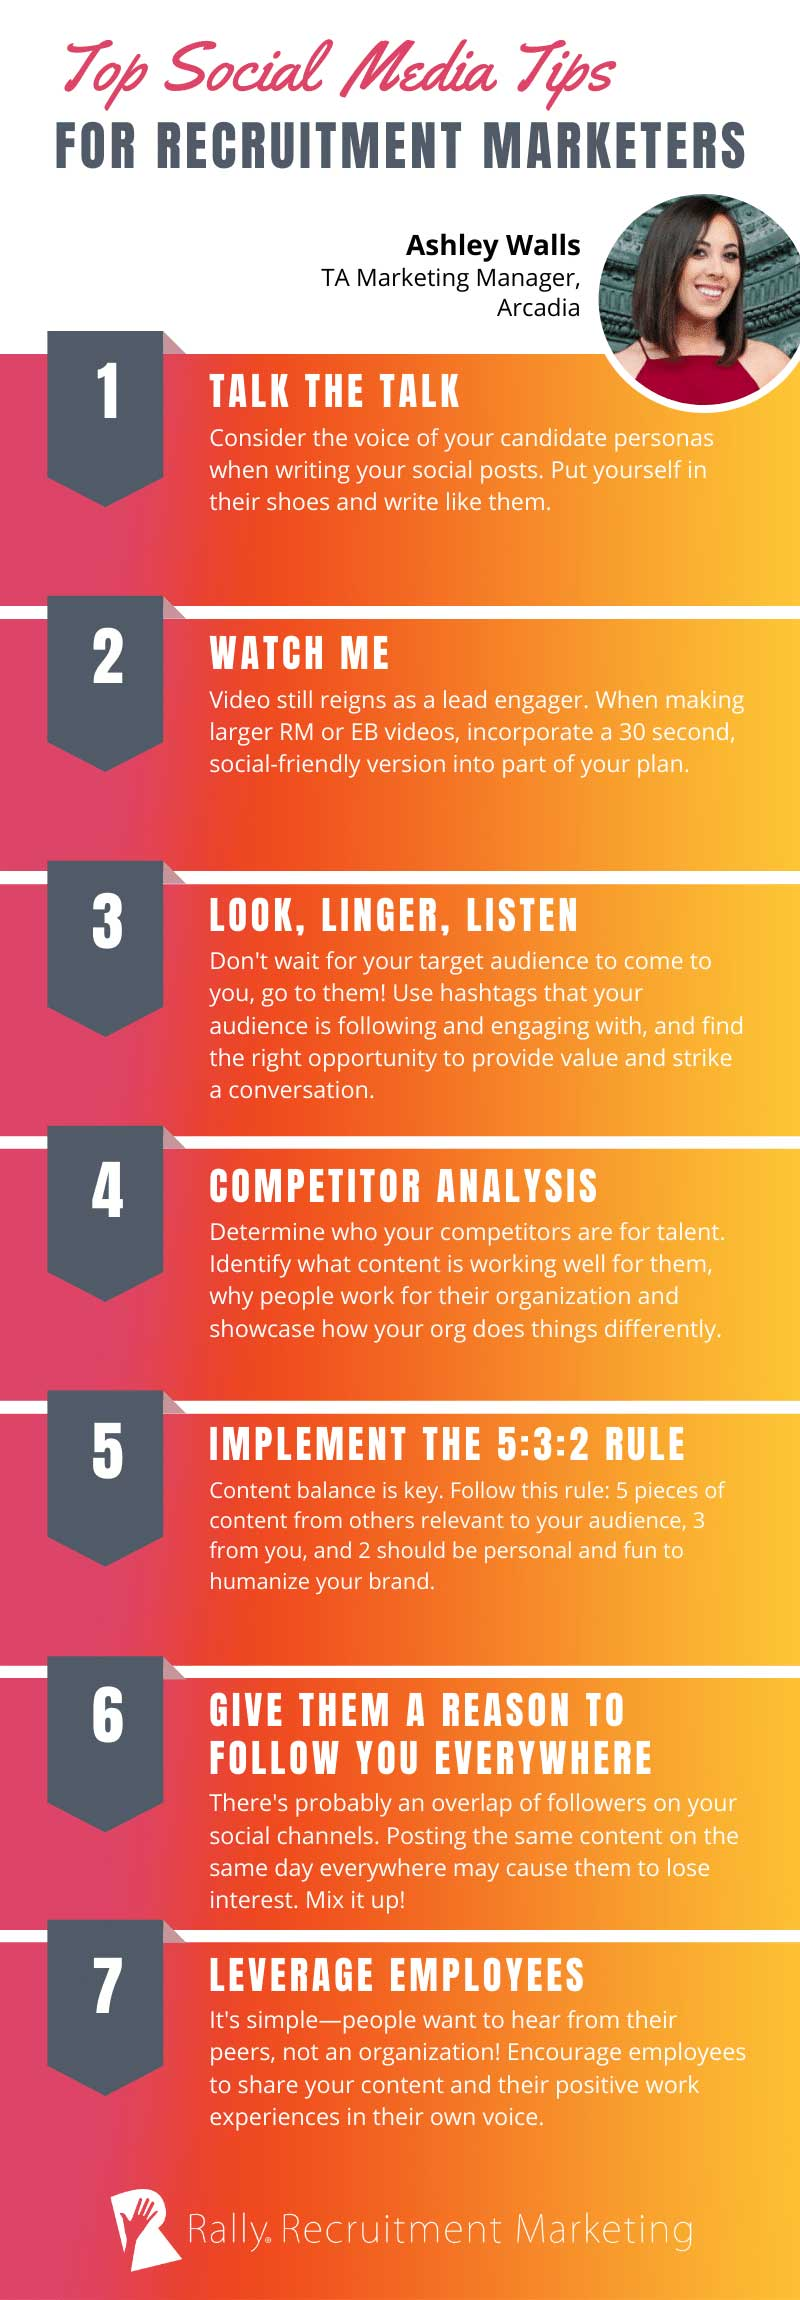 Infographic on social media tips for Recruitment Marketing